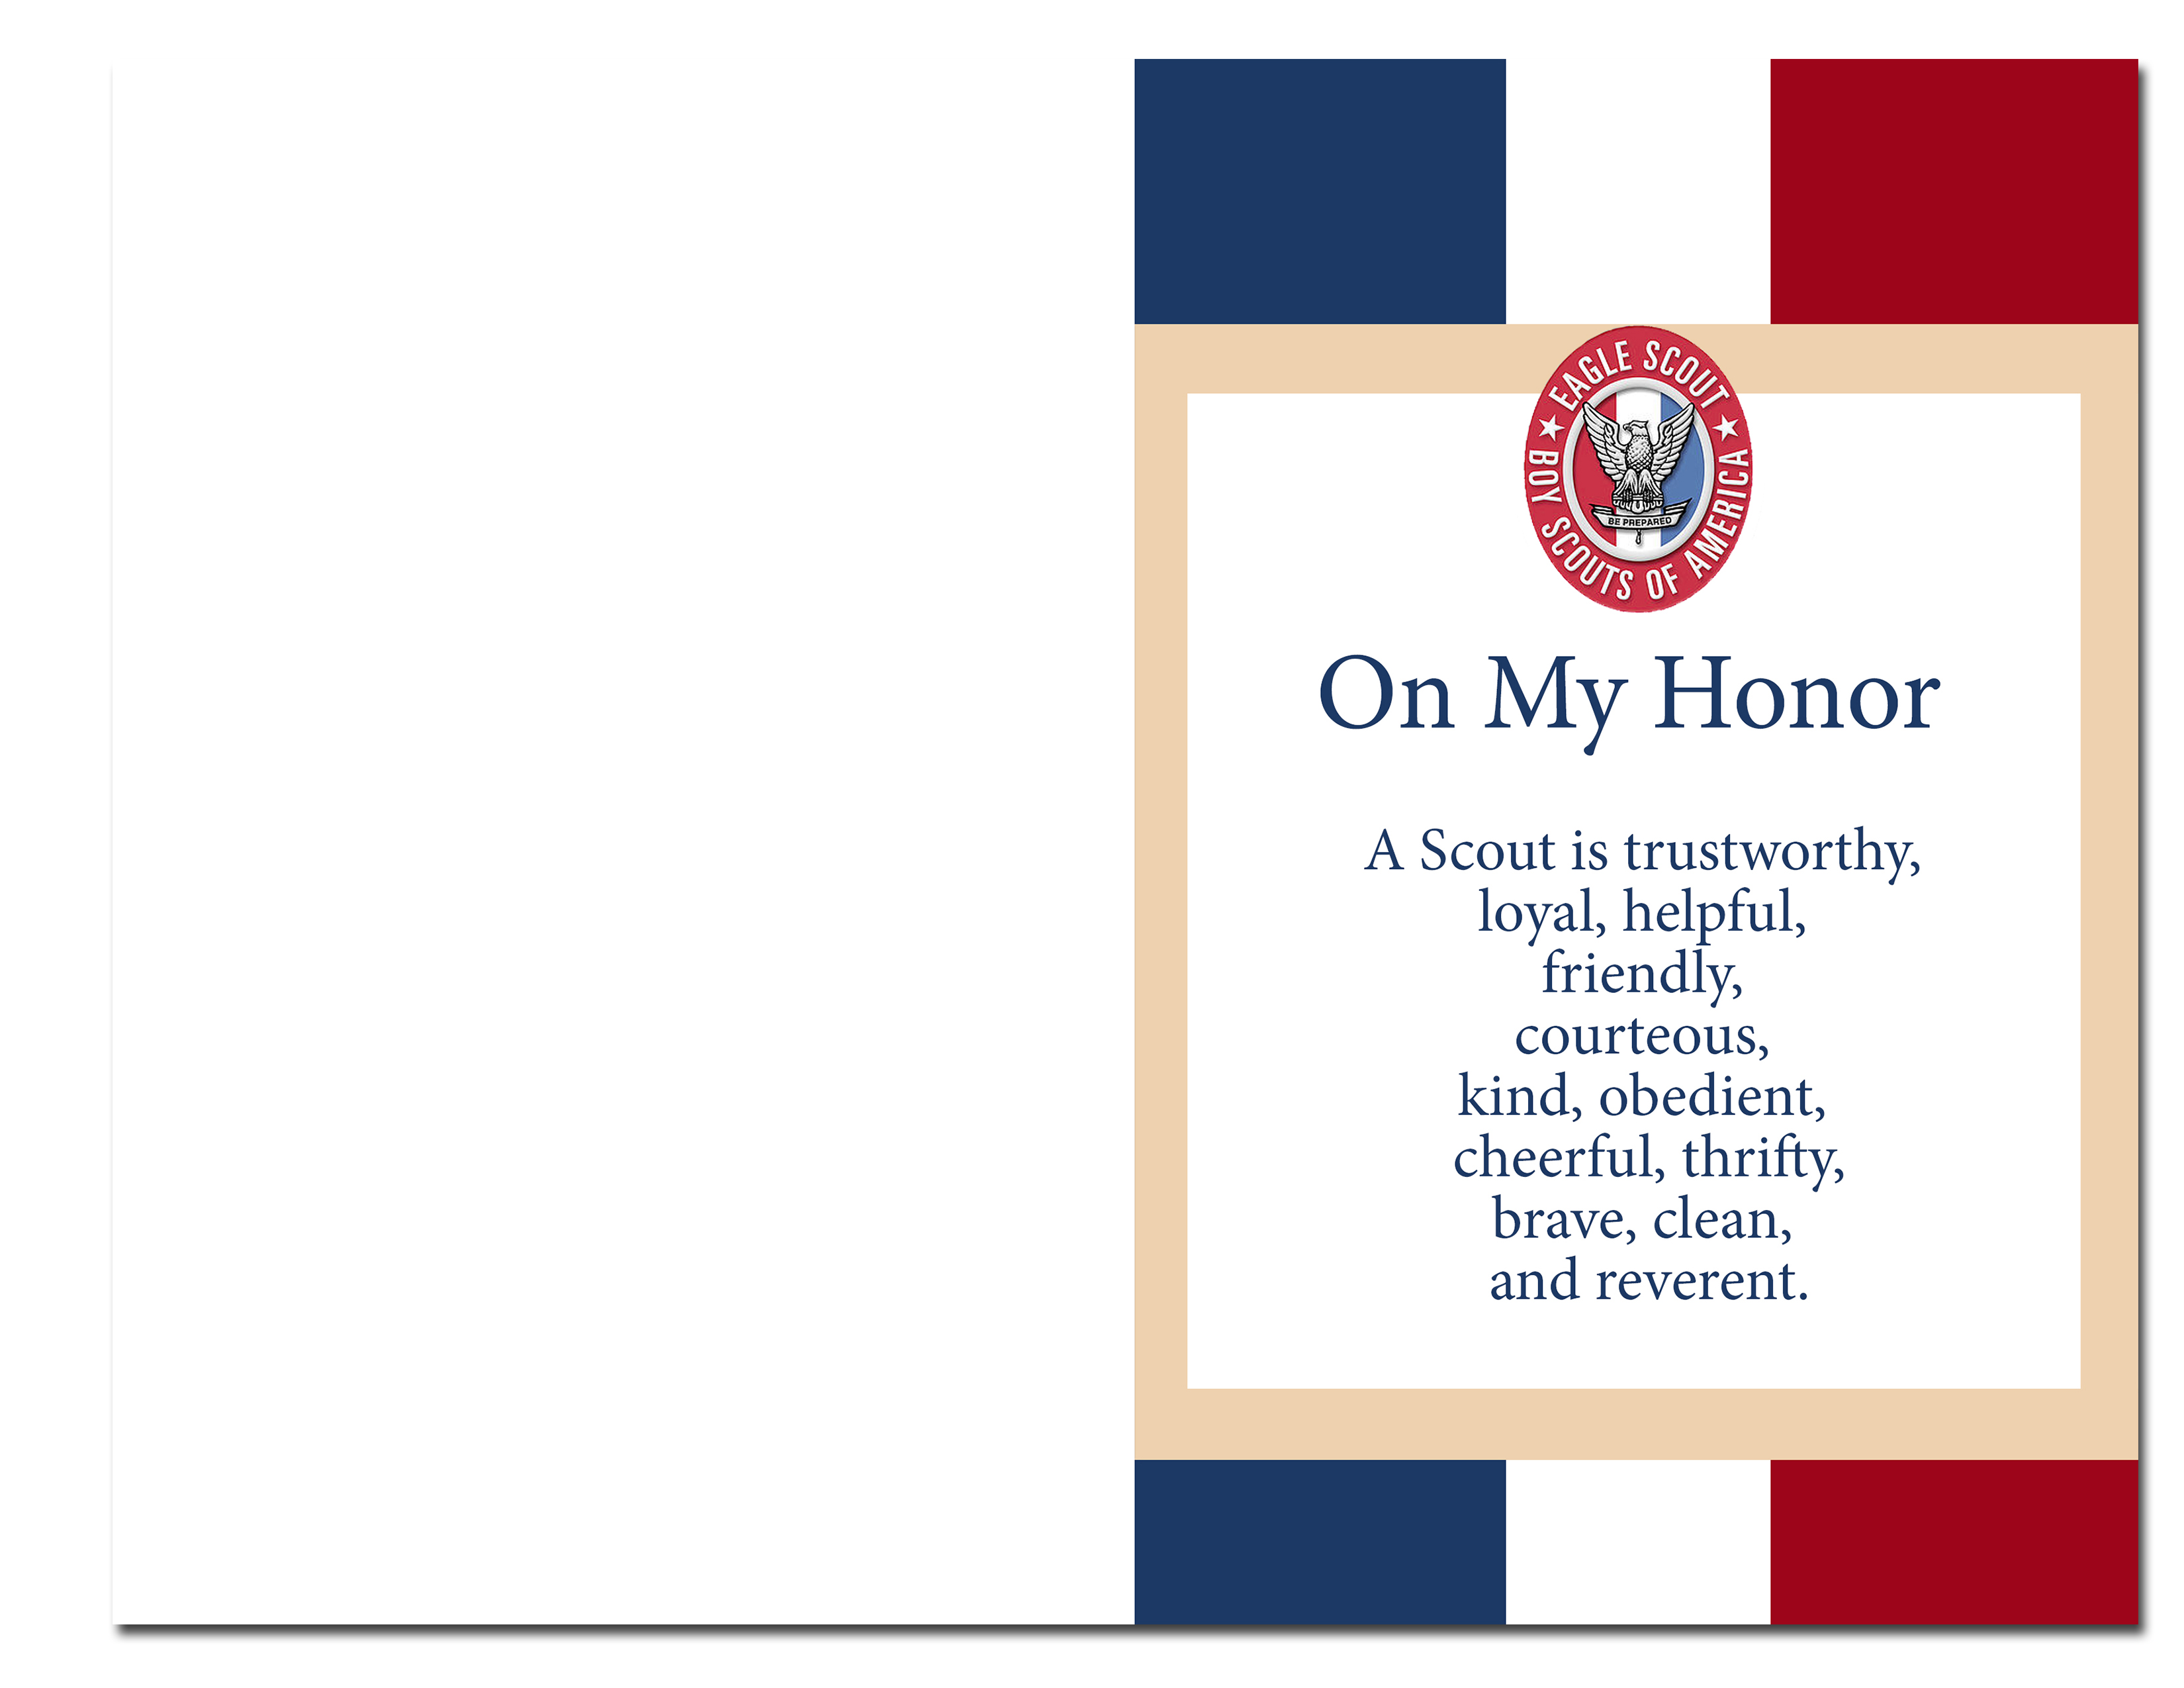 photograph regarding Eagle Scout Congratulations Card Printable identify Eagle Scout Court docket of Honor Tips and Absolutely free Printables